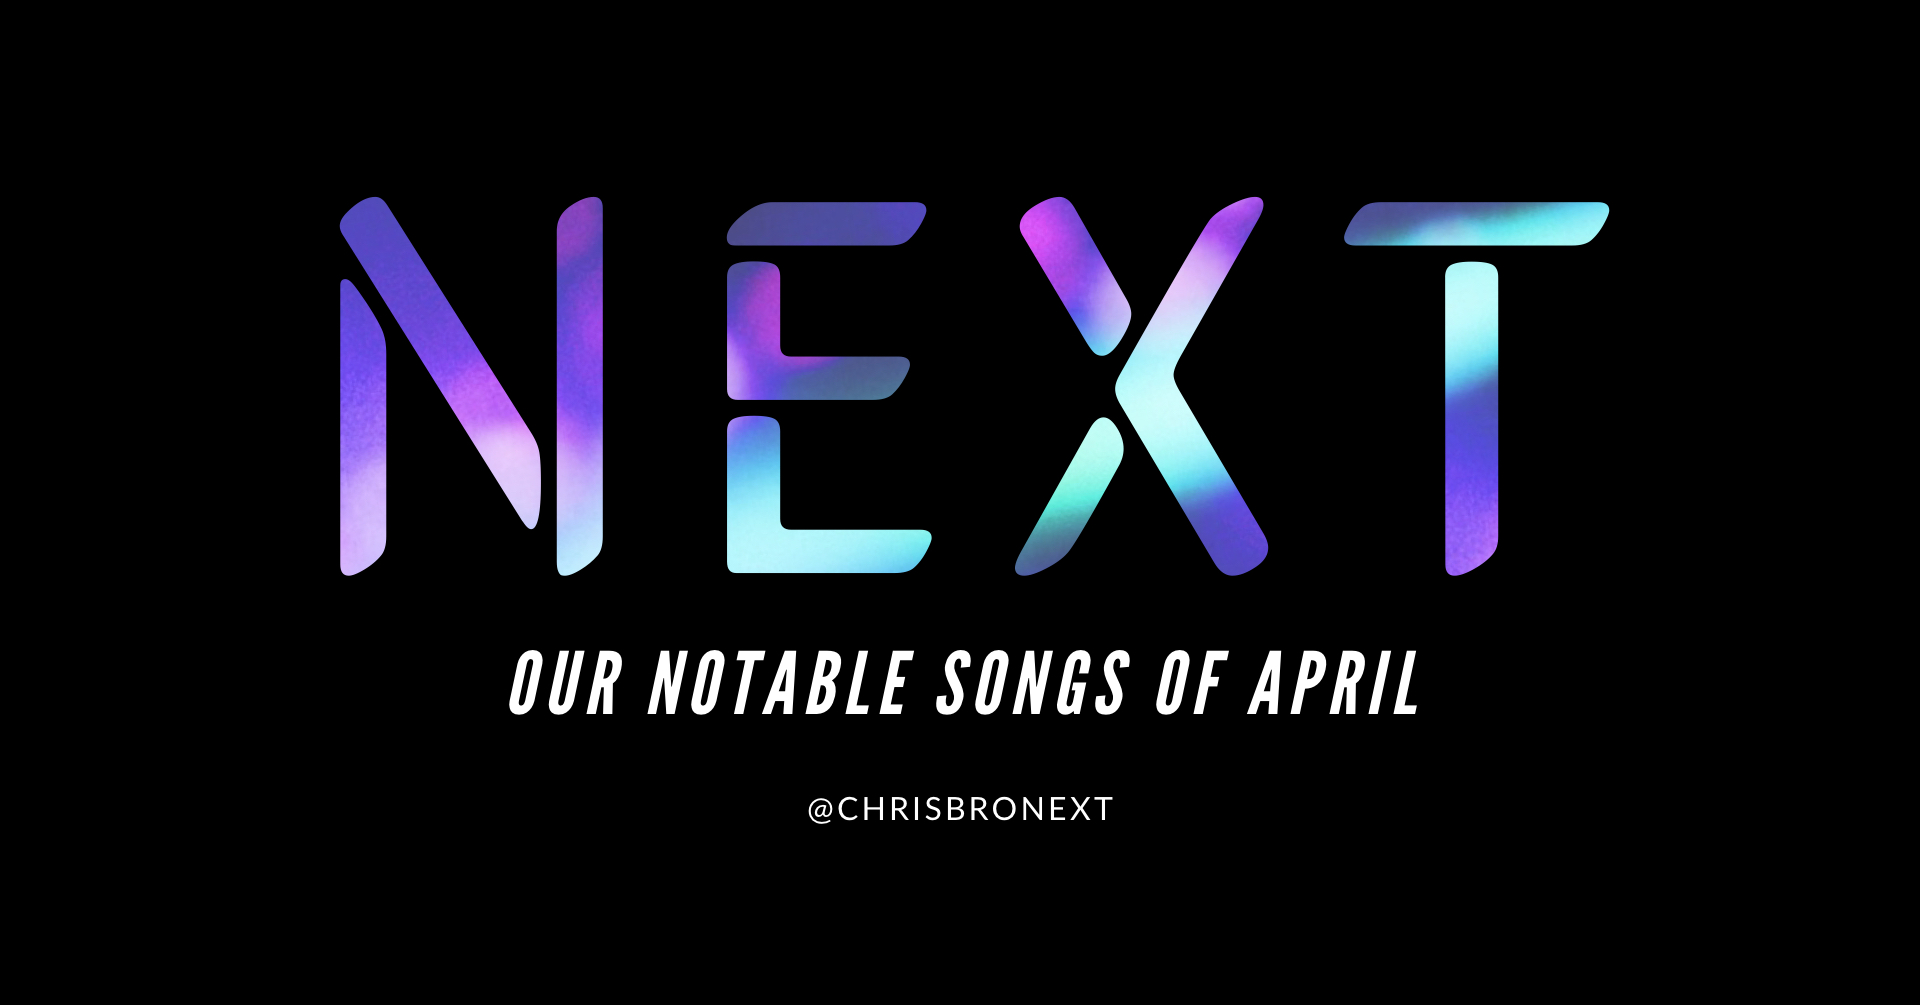 Next Week 731 Our Notable Songs of April 2020